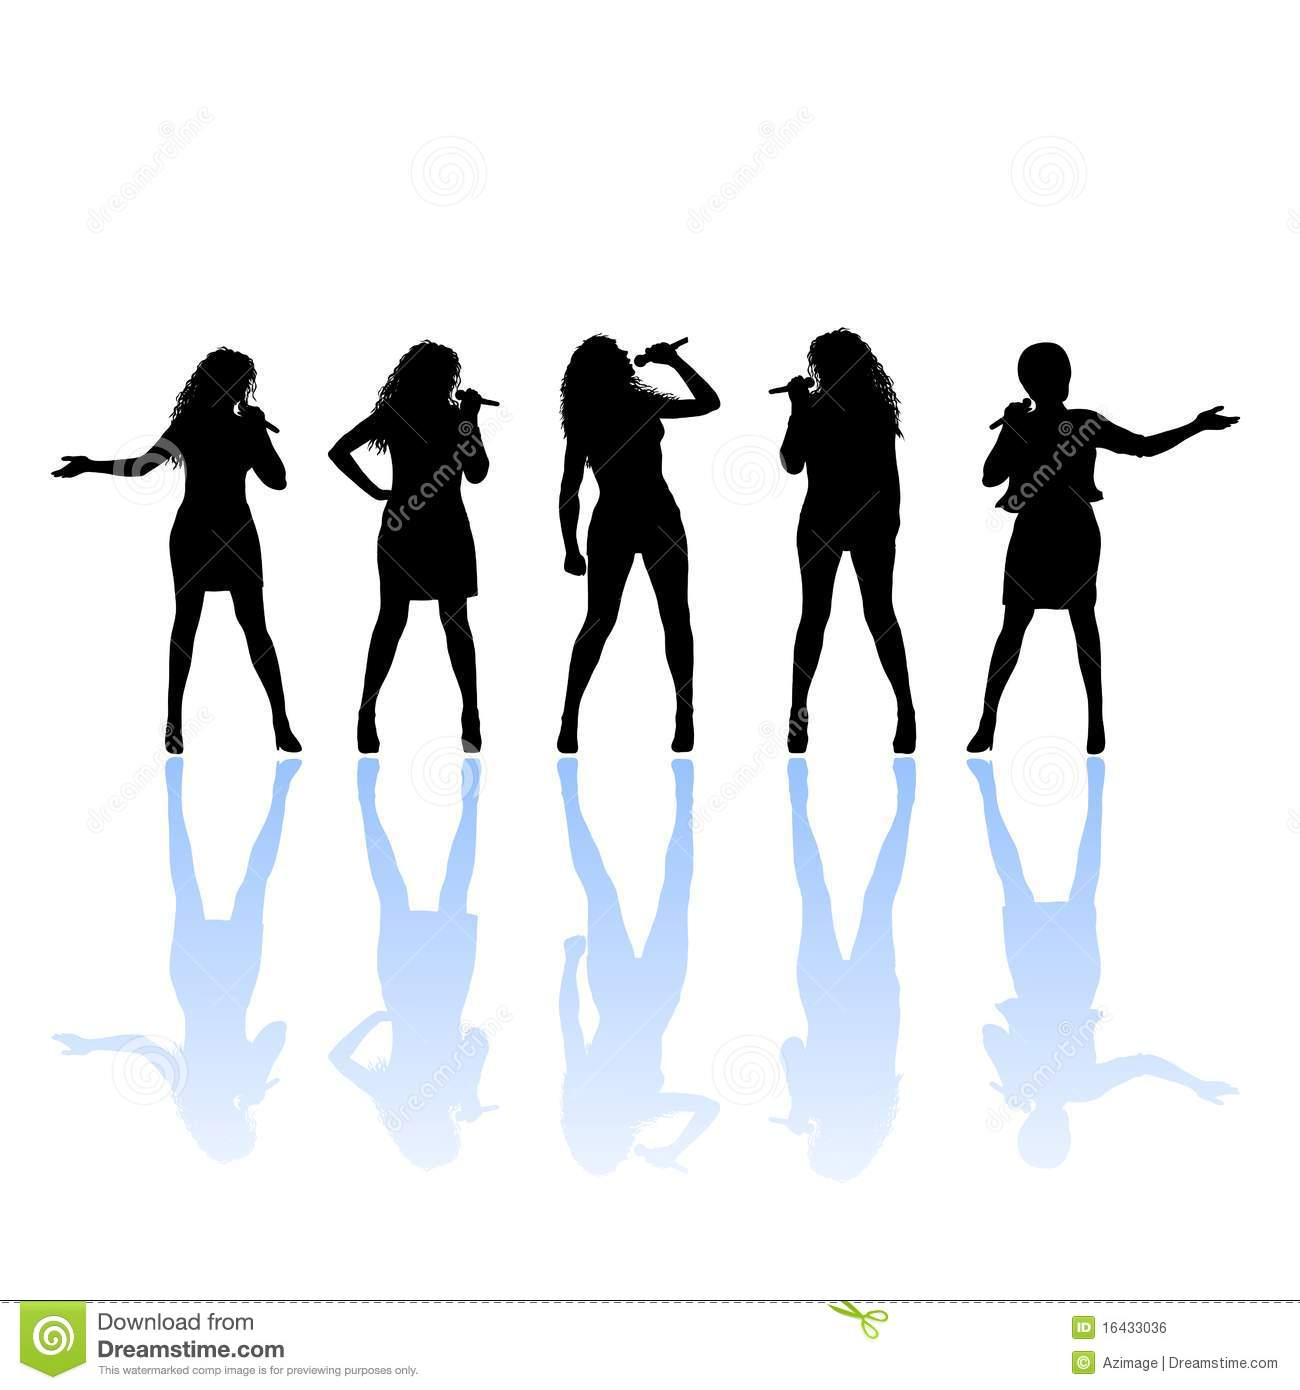 Singing clipart lady singer. Country silhouette at getdrawings